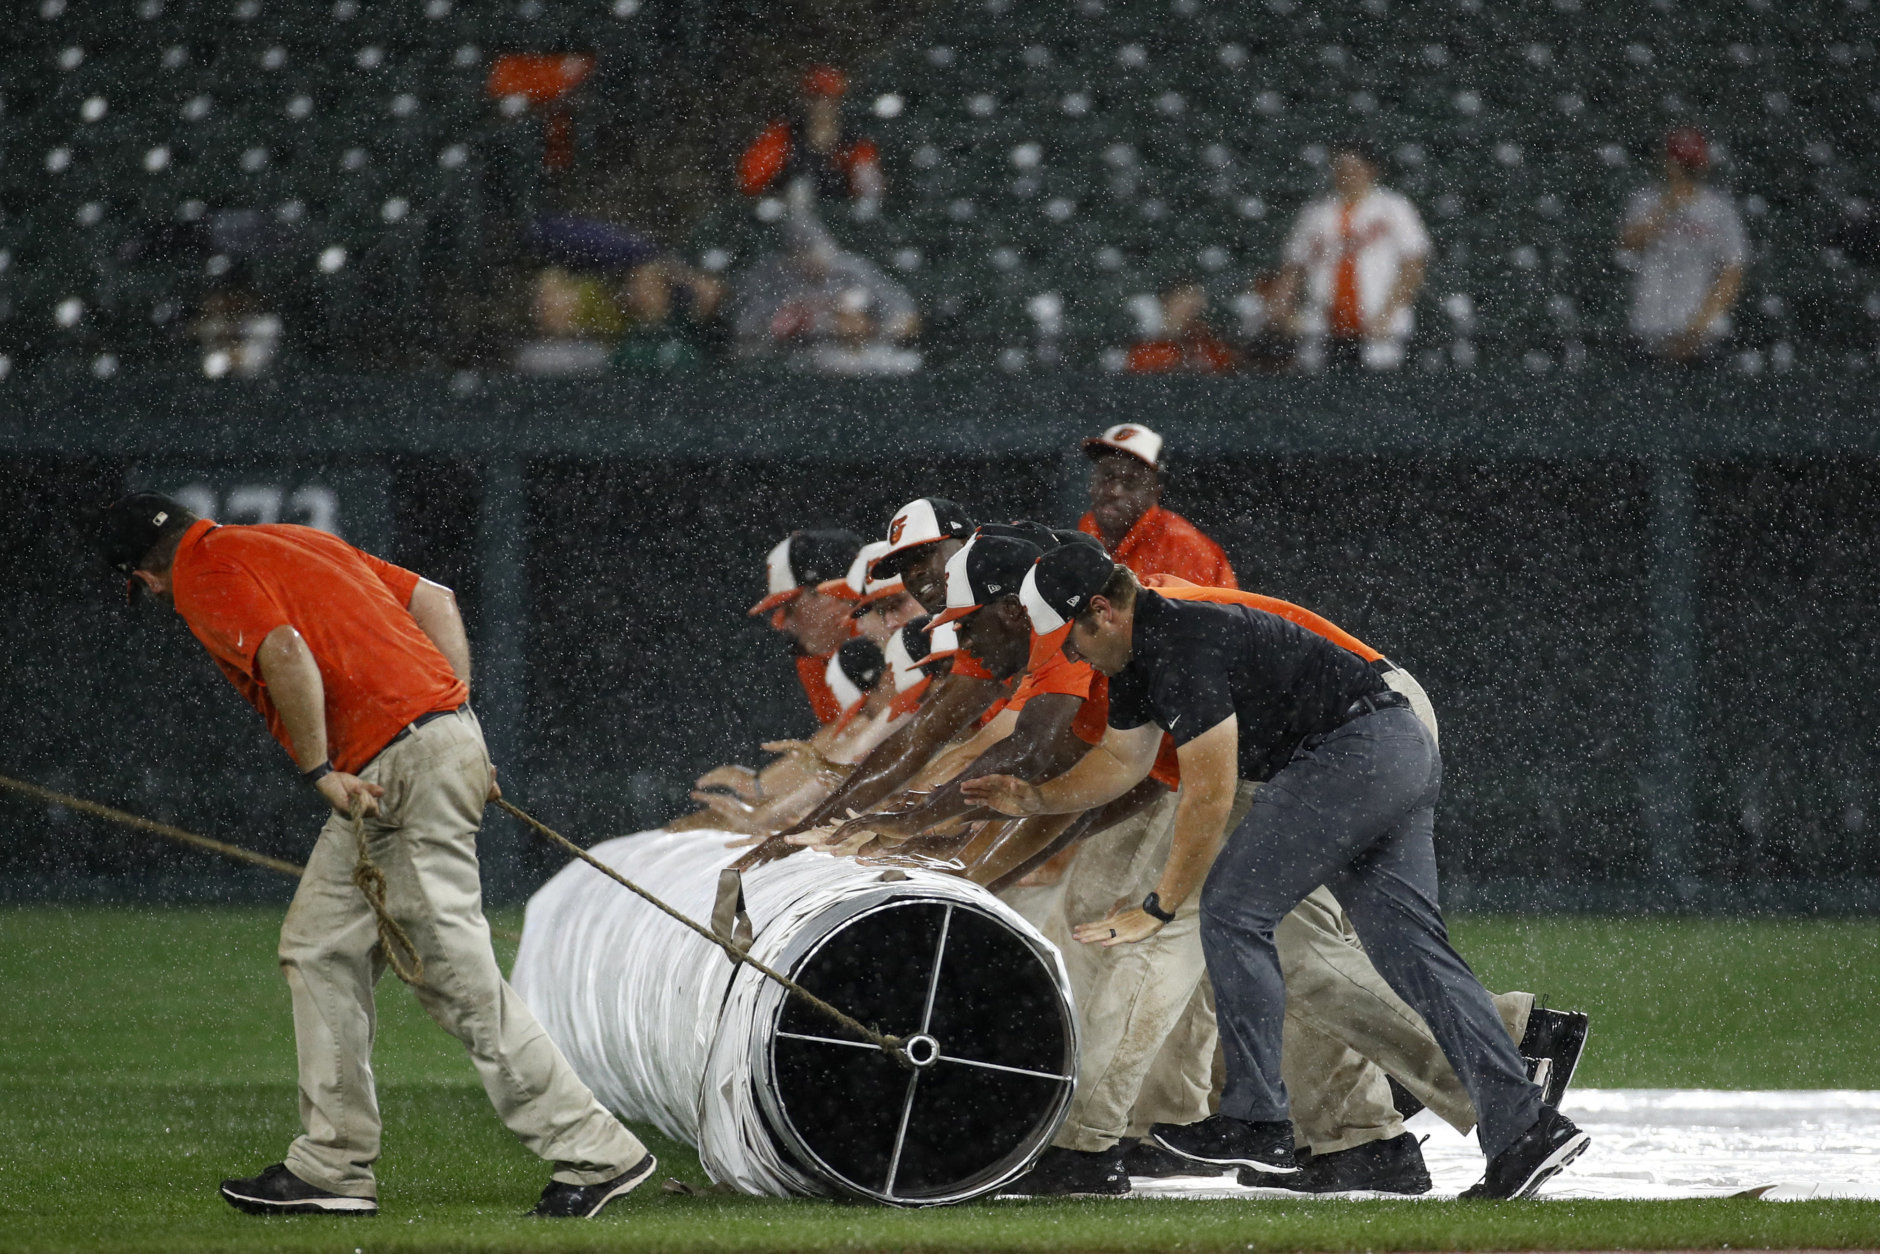 Grounds crew members roll a tarp over the field during a rain delay in a baseball game between the Boston Red Sox and the Baltimore Orioles, Tuesday, July 24, 2018, in Baltimore. (AP Photo/Patrick Semansky)